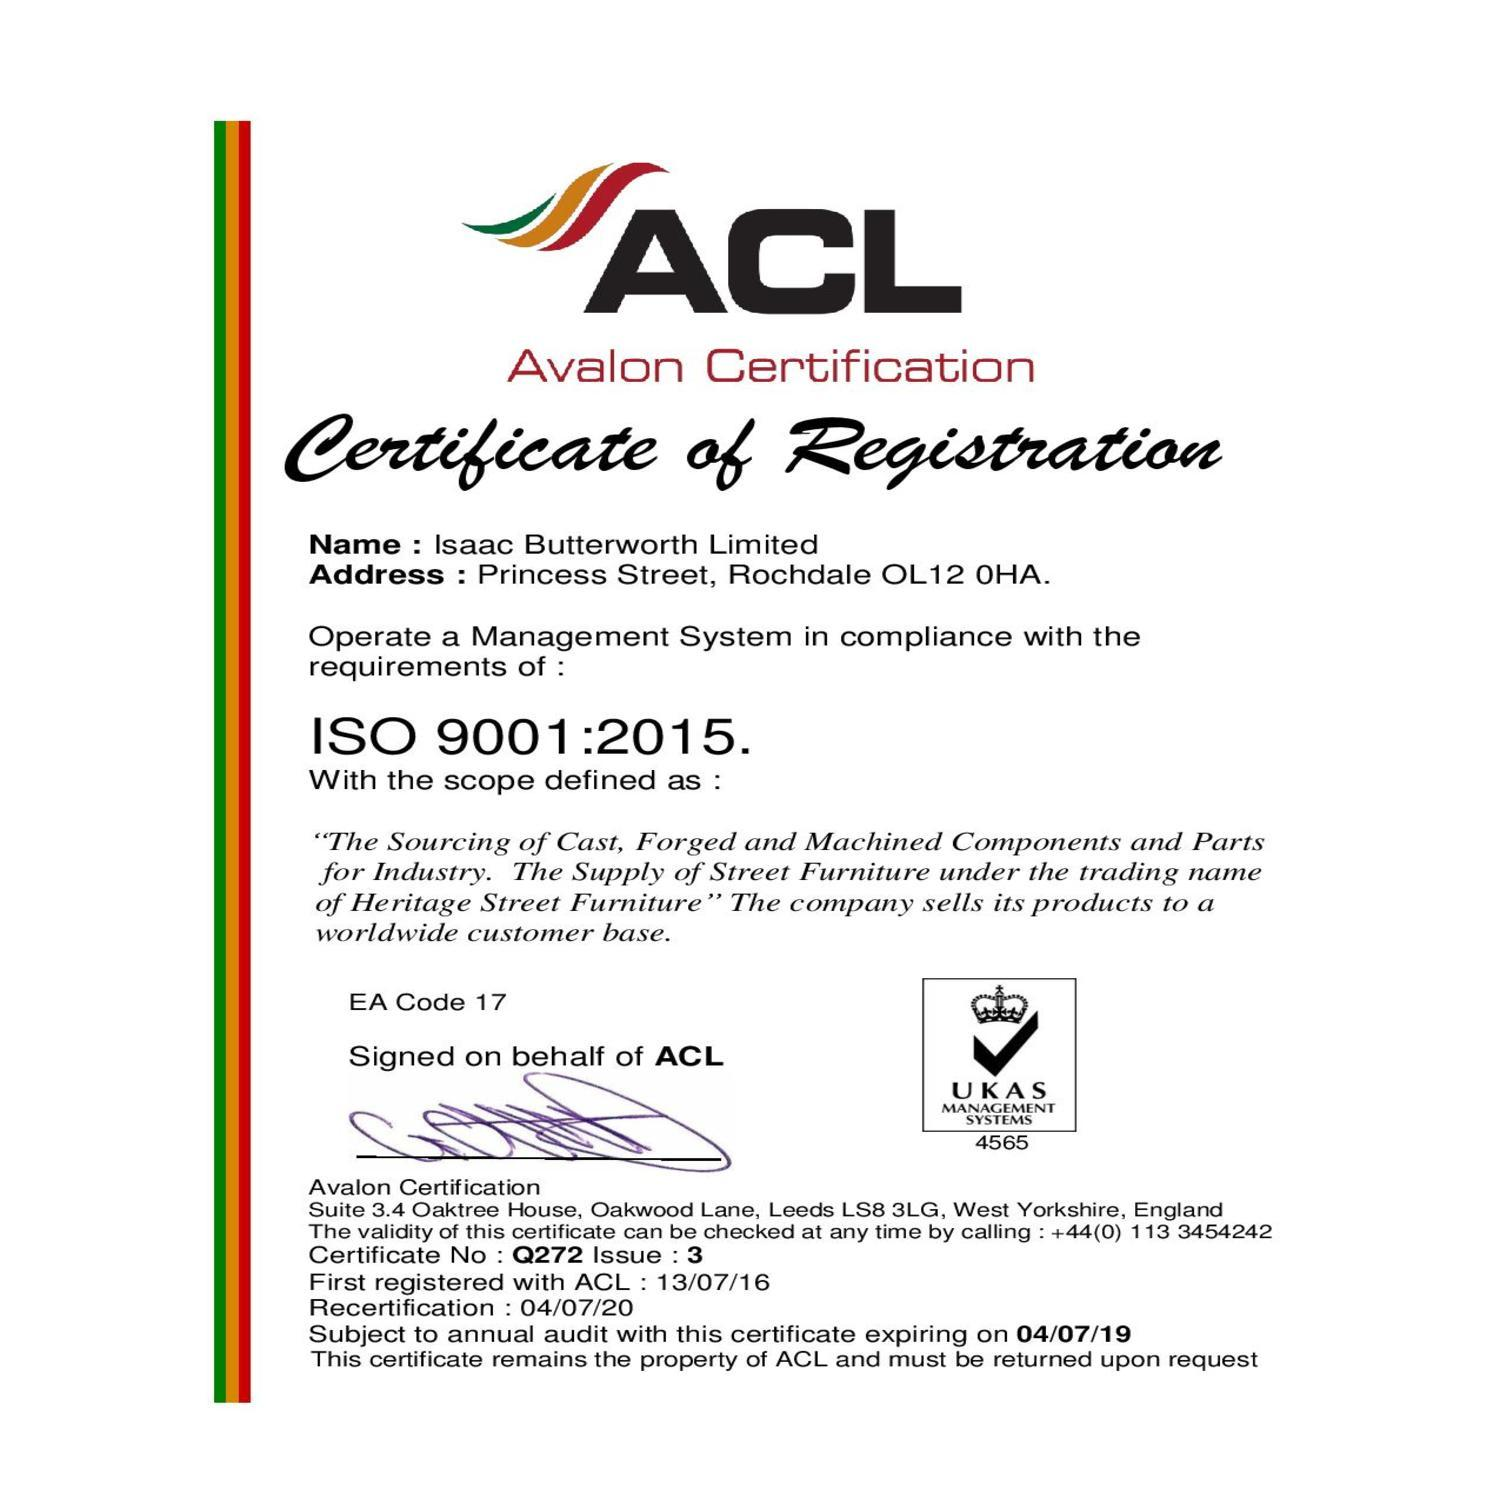 ISO9001:2015 Certificate of Registration